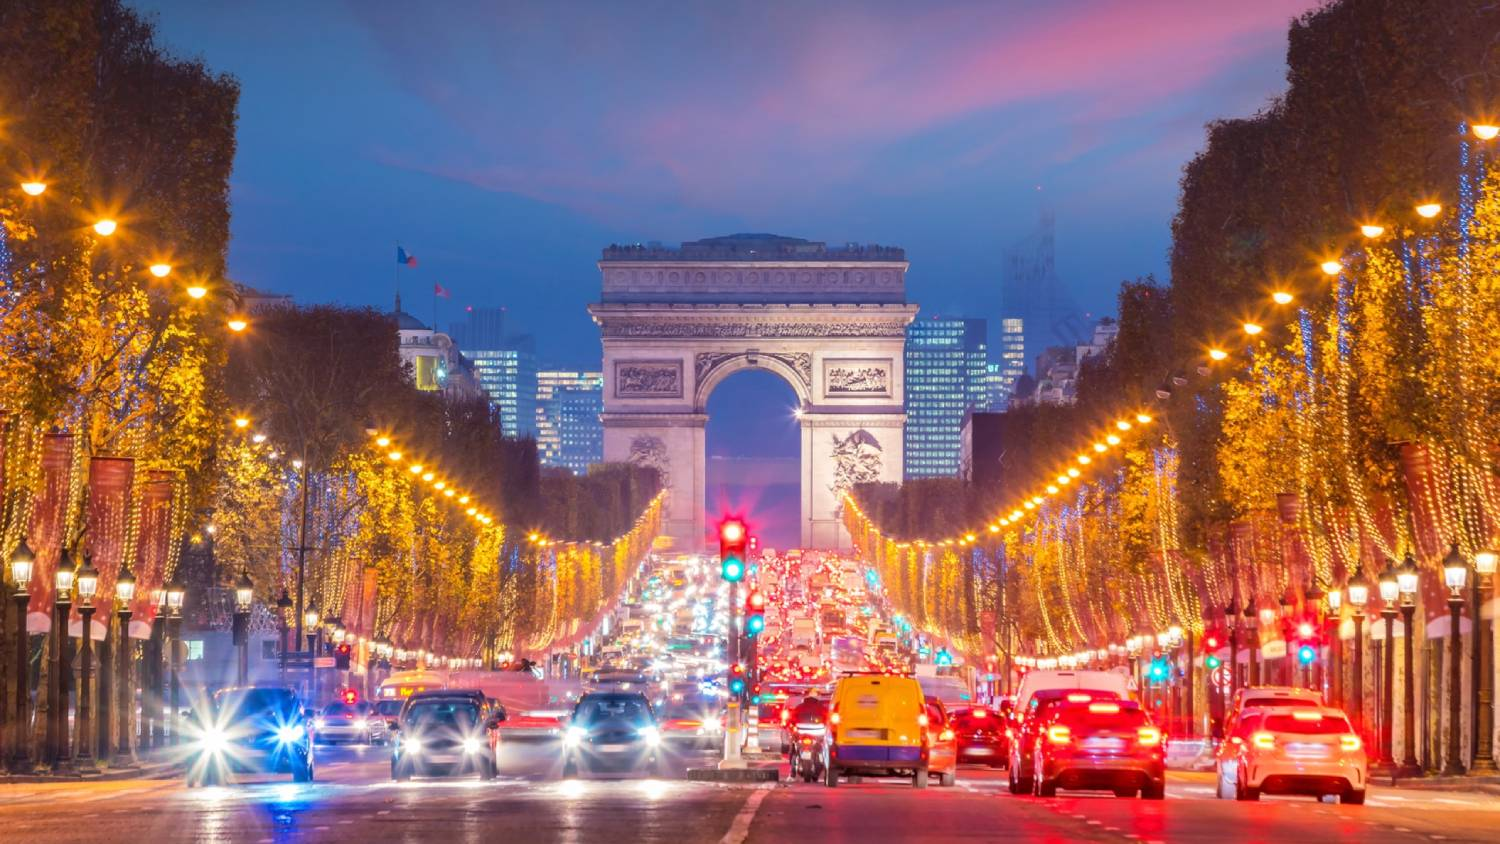 Avenue des Champs-Elysees - Things To Do In Paris